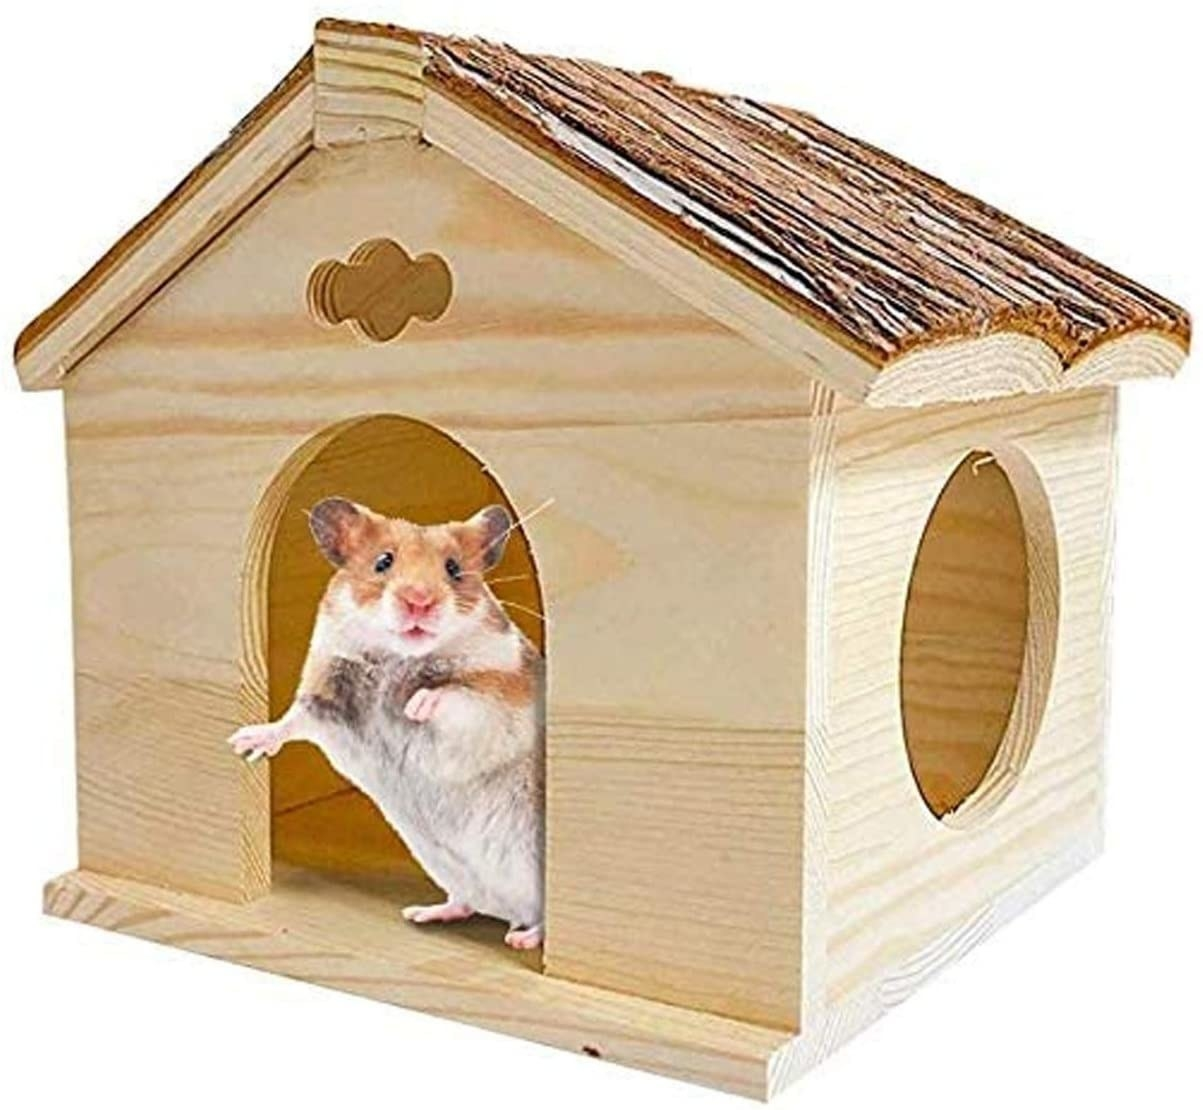 The wooden hamster house